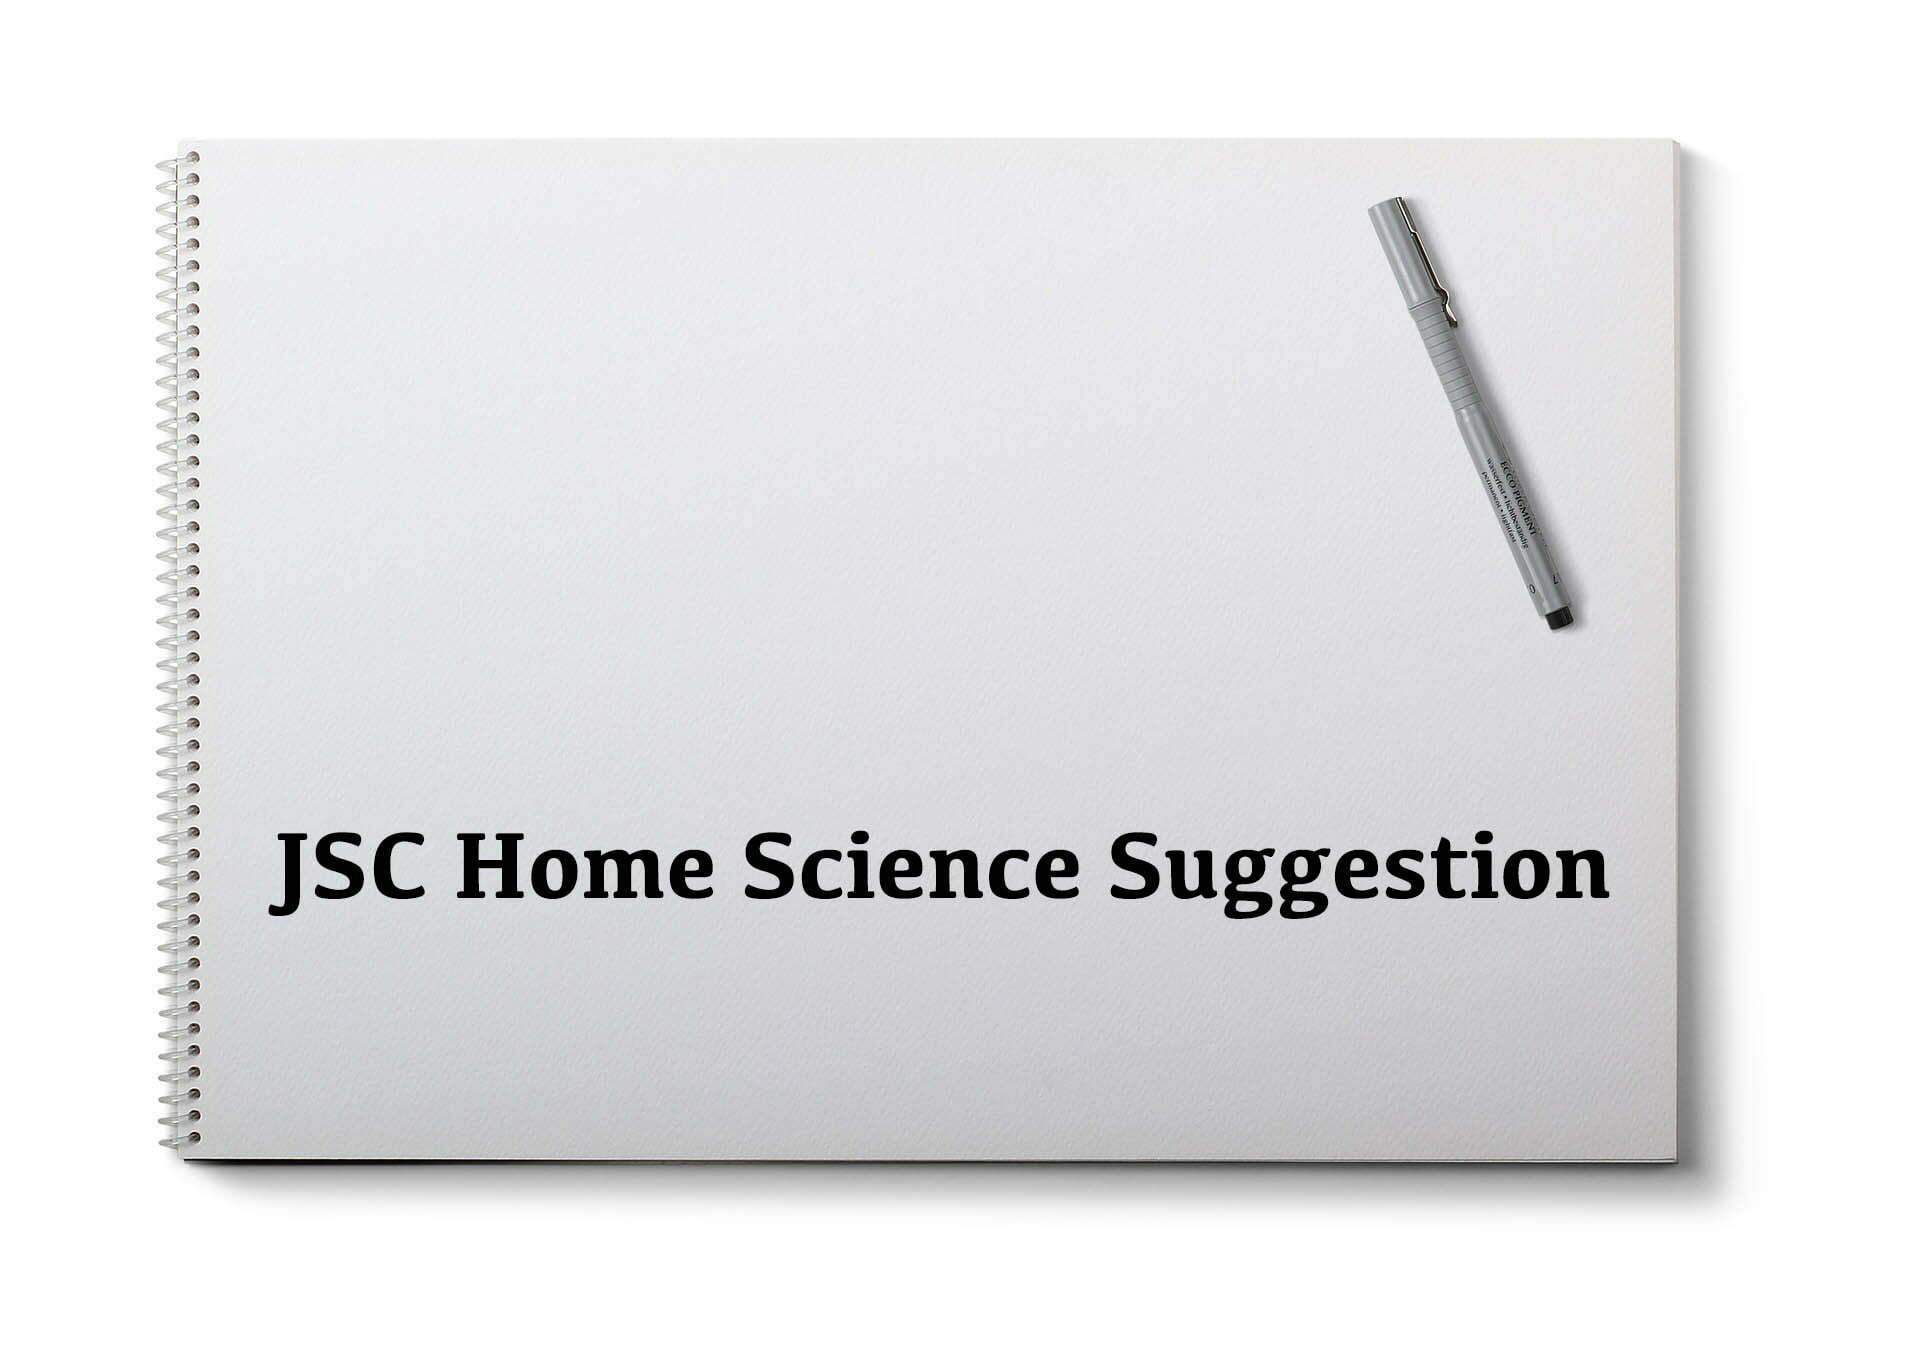 JSC Home Science Suggestion 2019